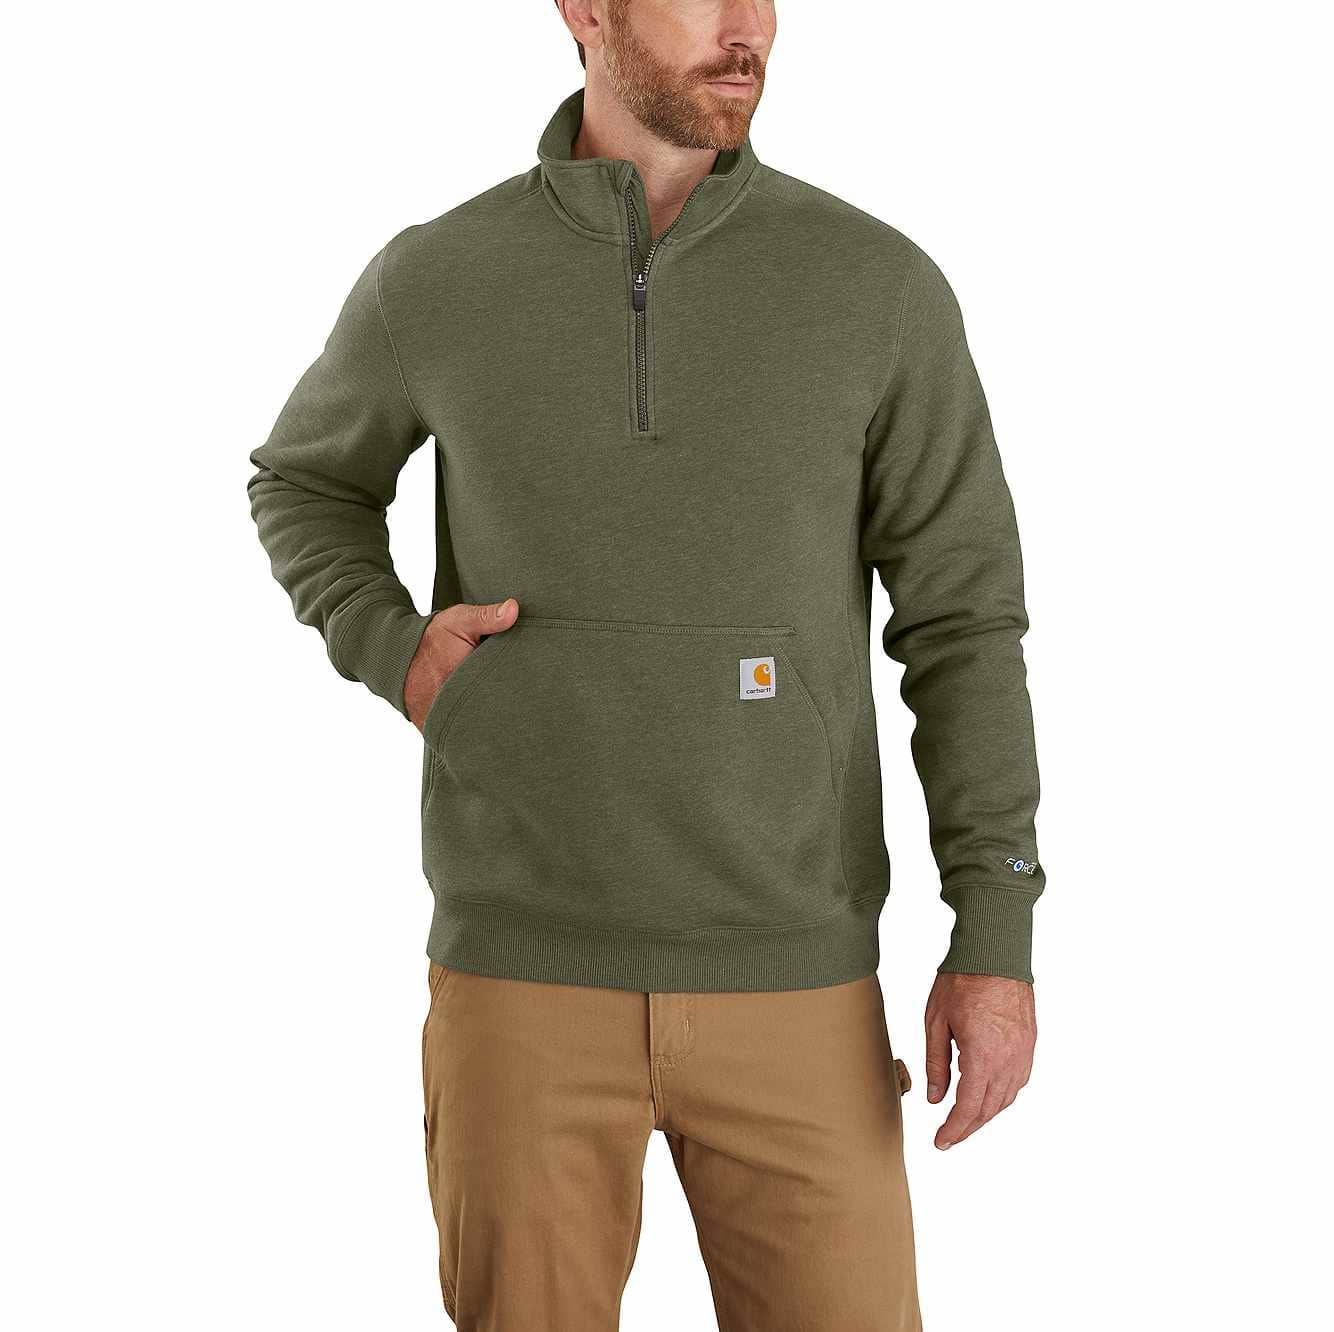 Picture of Carhartt Force® Relaxed Fit Midweight 1/4 Zip Pocket Sweatshirt in Moss Heather